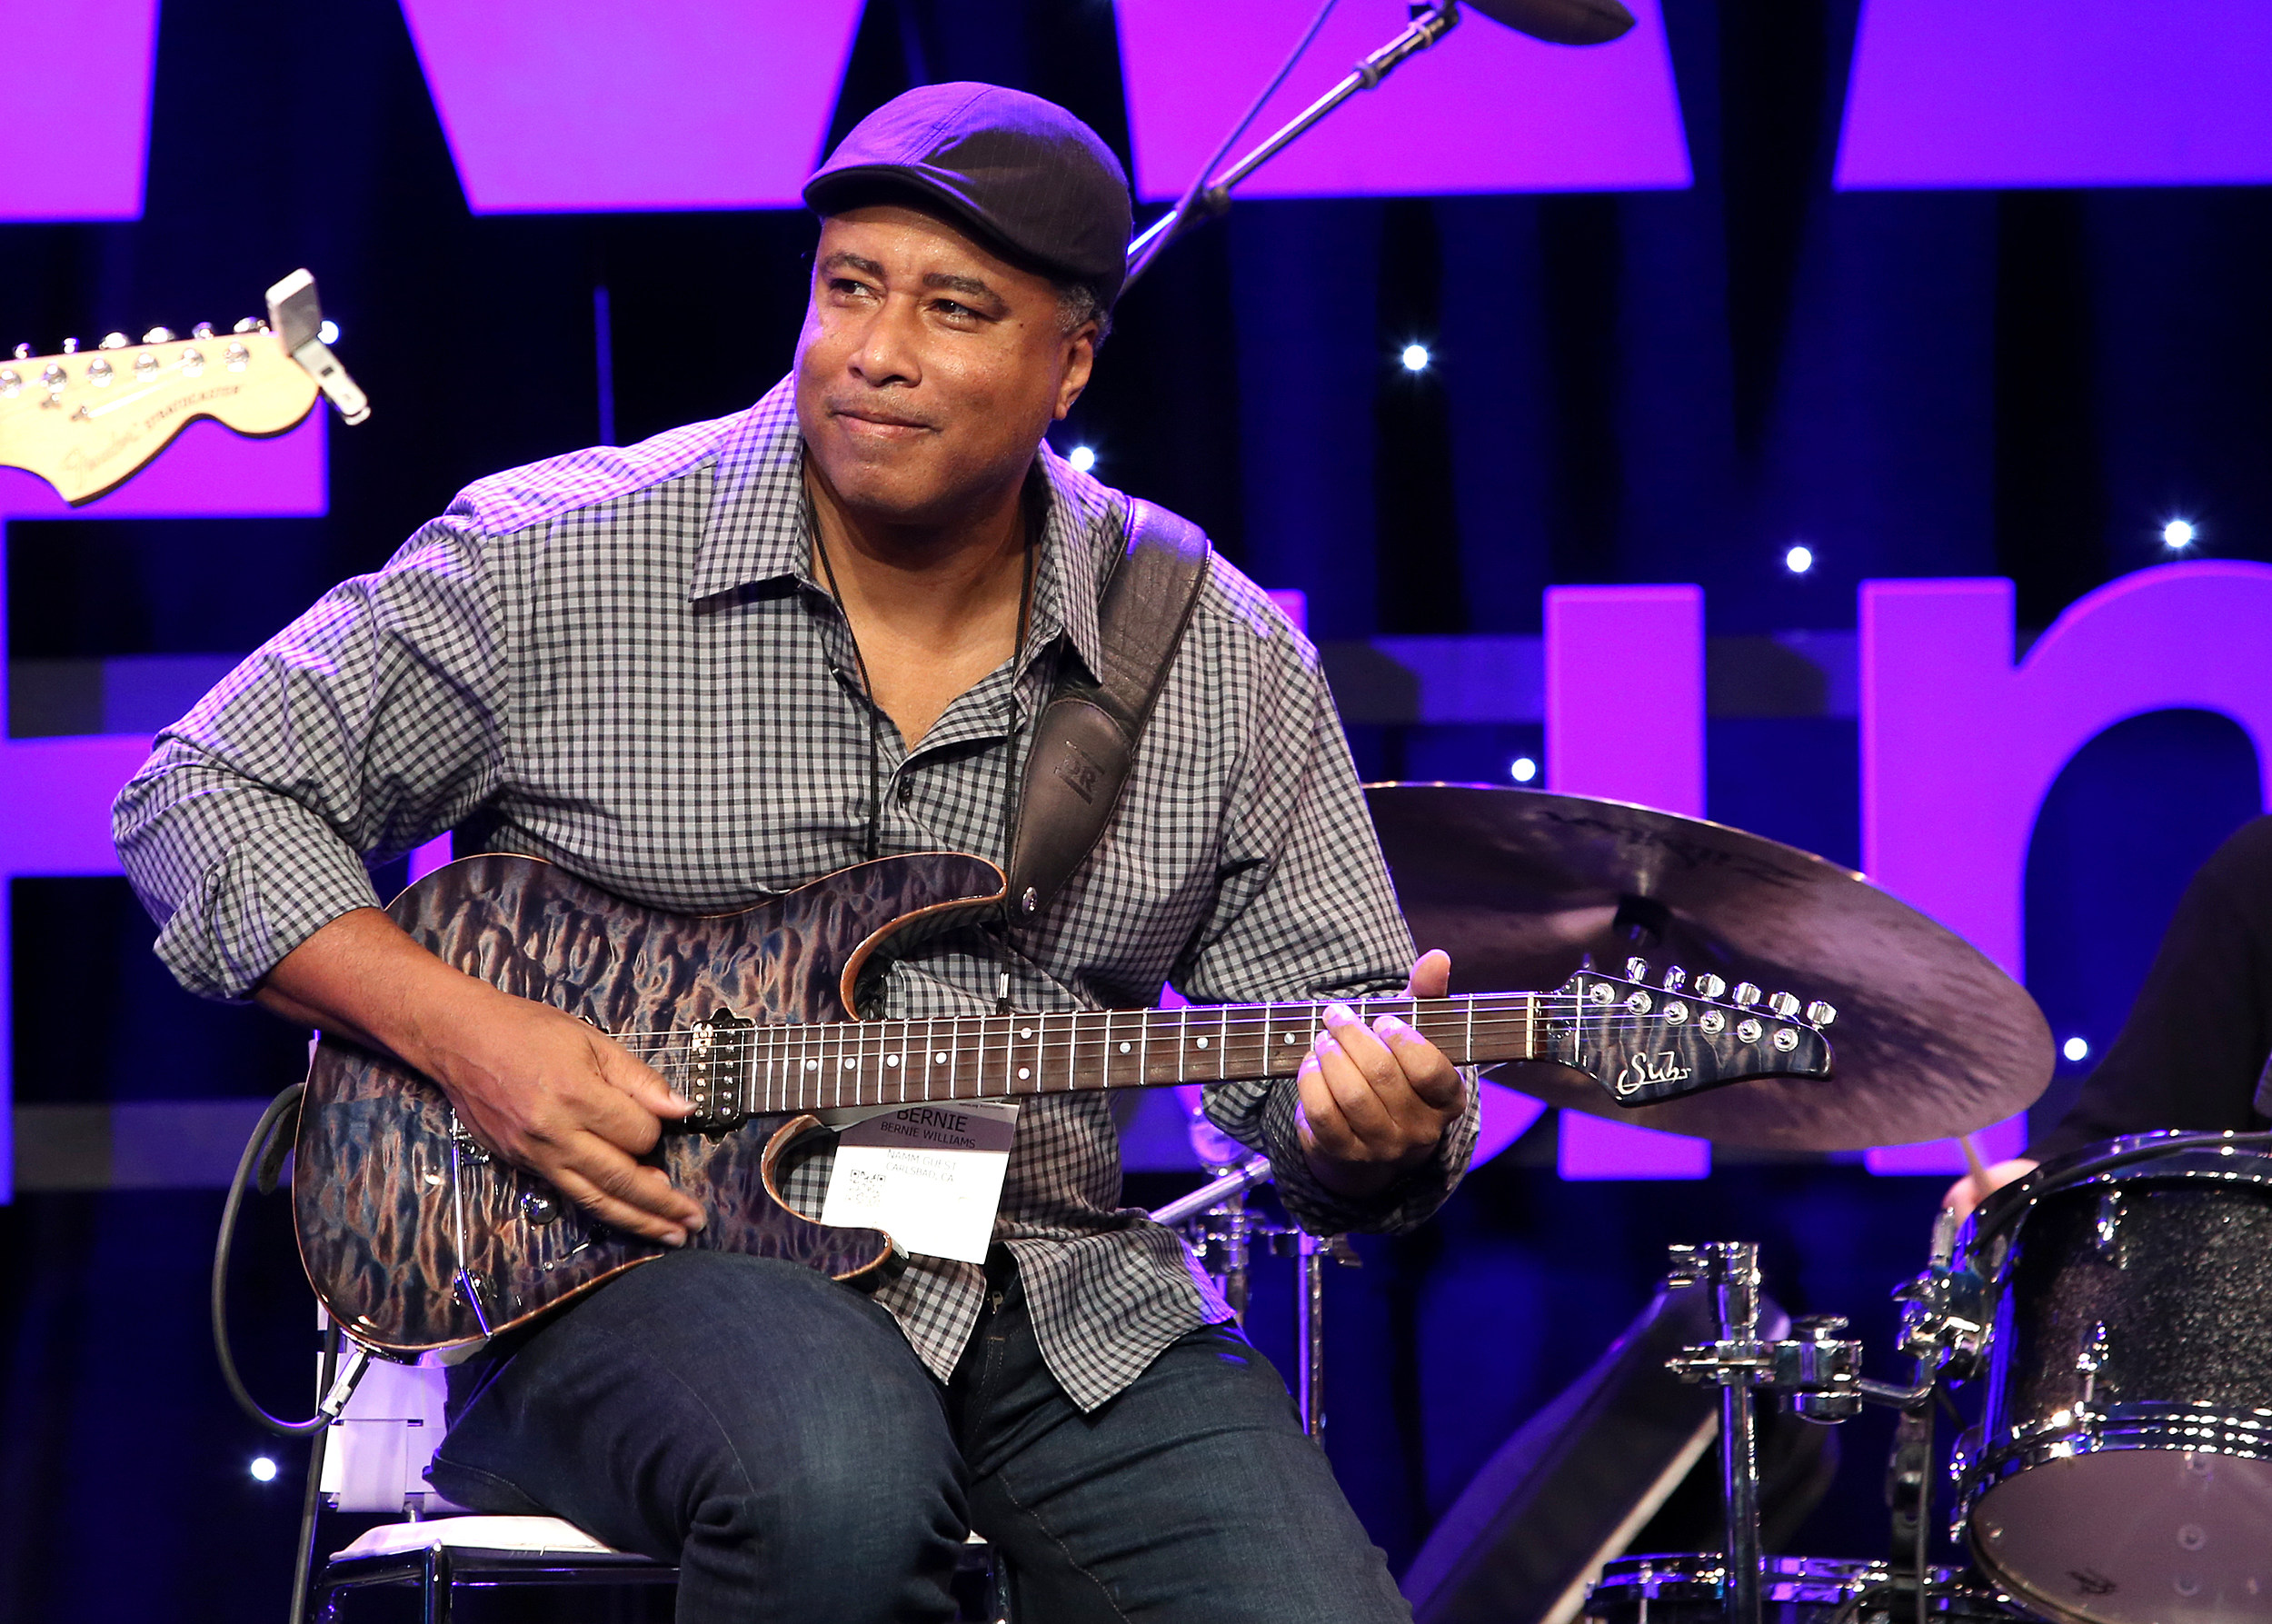 Bernie Williams - A former professional baseball player and musician. He played his entire 16-year career in Major League Baseball (MLB) with the New York Yankees from 1991 through 2006.A center fielder, Williams was a member of four World Series championship teams with the Yankees. He ended his career with a .297 batting average, 287 home runs, 1,257 runs batted in (RBI), 1,366 runs scored, and 449 doubles. His career fielding percentage was .990. He was a five-time MLB All-Star and won four Gold Glove Awards. He also won the Silver Slugger Award and American League Championship Series Most Valuable Player Award. Known for his consistency and post-season heroics, Williams is one of the most beloved Yankees of all time and his number, 51, was retired by the Yankees in May 2015. Bernie Williams is widely regarded as one of the greatest switch-hitting center fielders in Yankee history.Williams is also a classically trained guitarist. Following his retirement from baseball, he has released two jazz albums. He was nominated for a Latin Grammy in 2009.